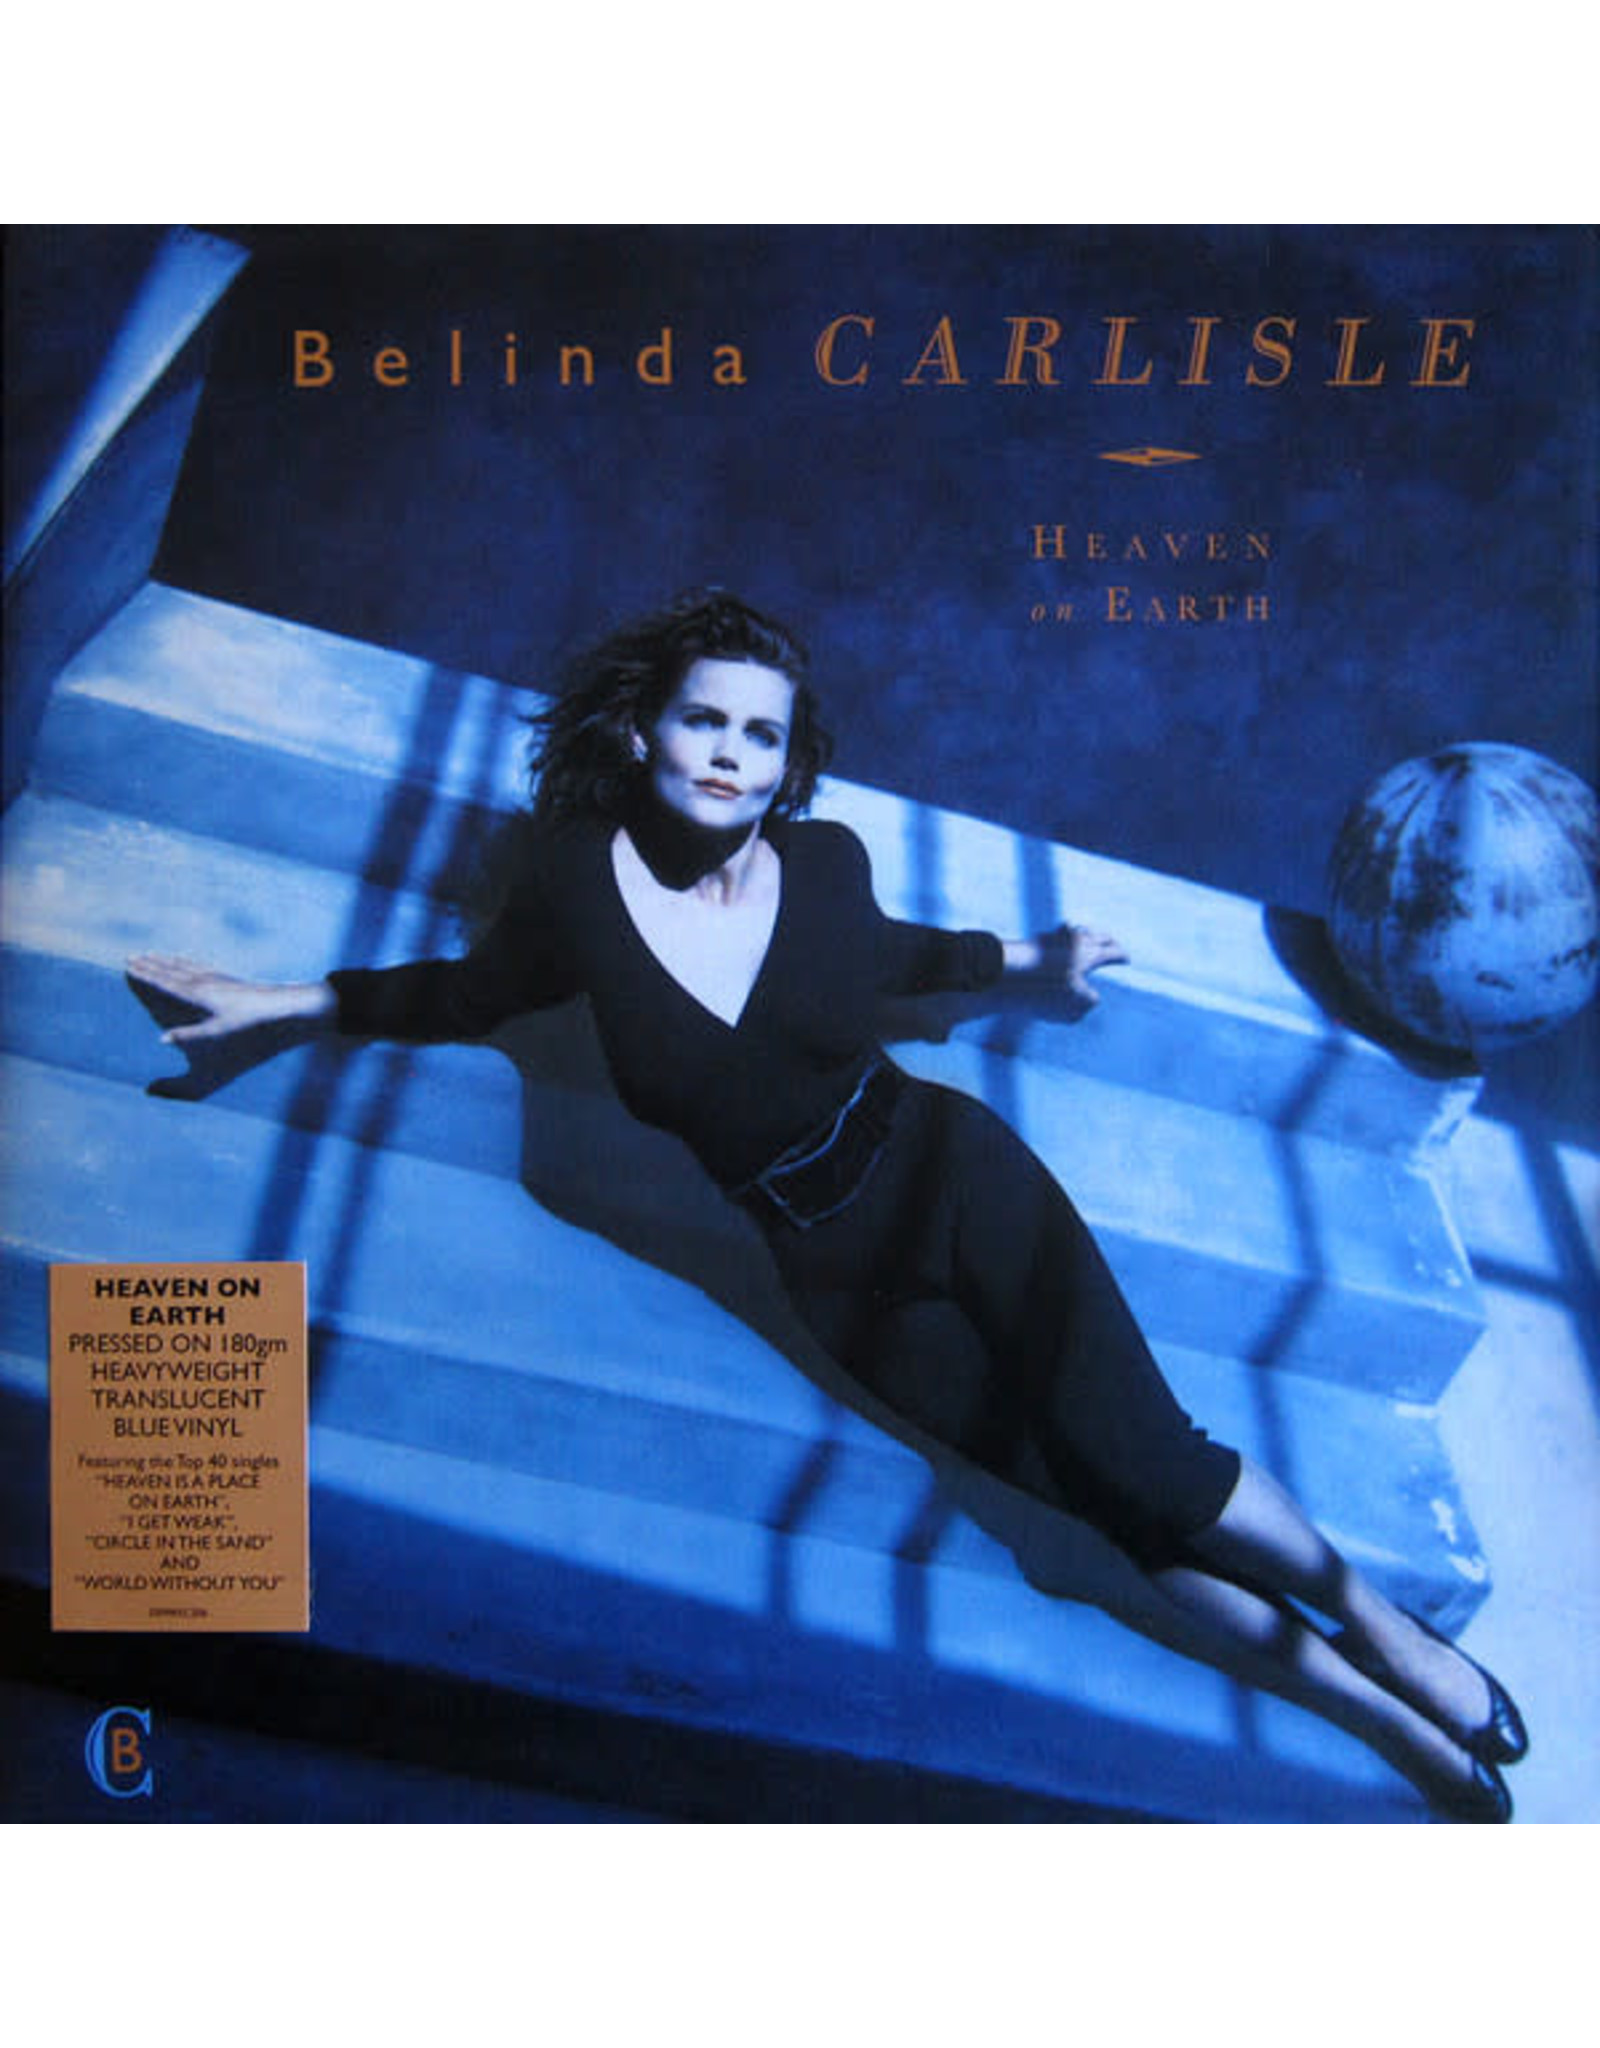 Belinda Carlisle - Heaven on Earth (Blue Vinyl)